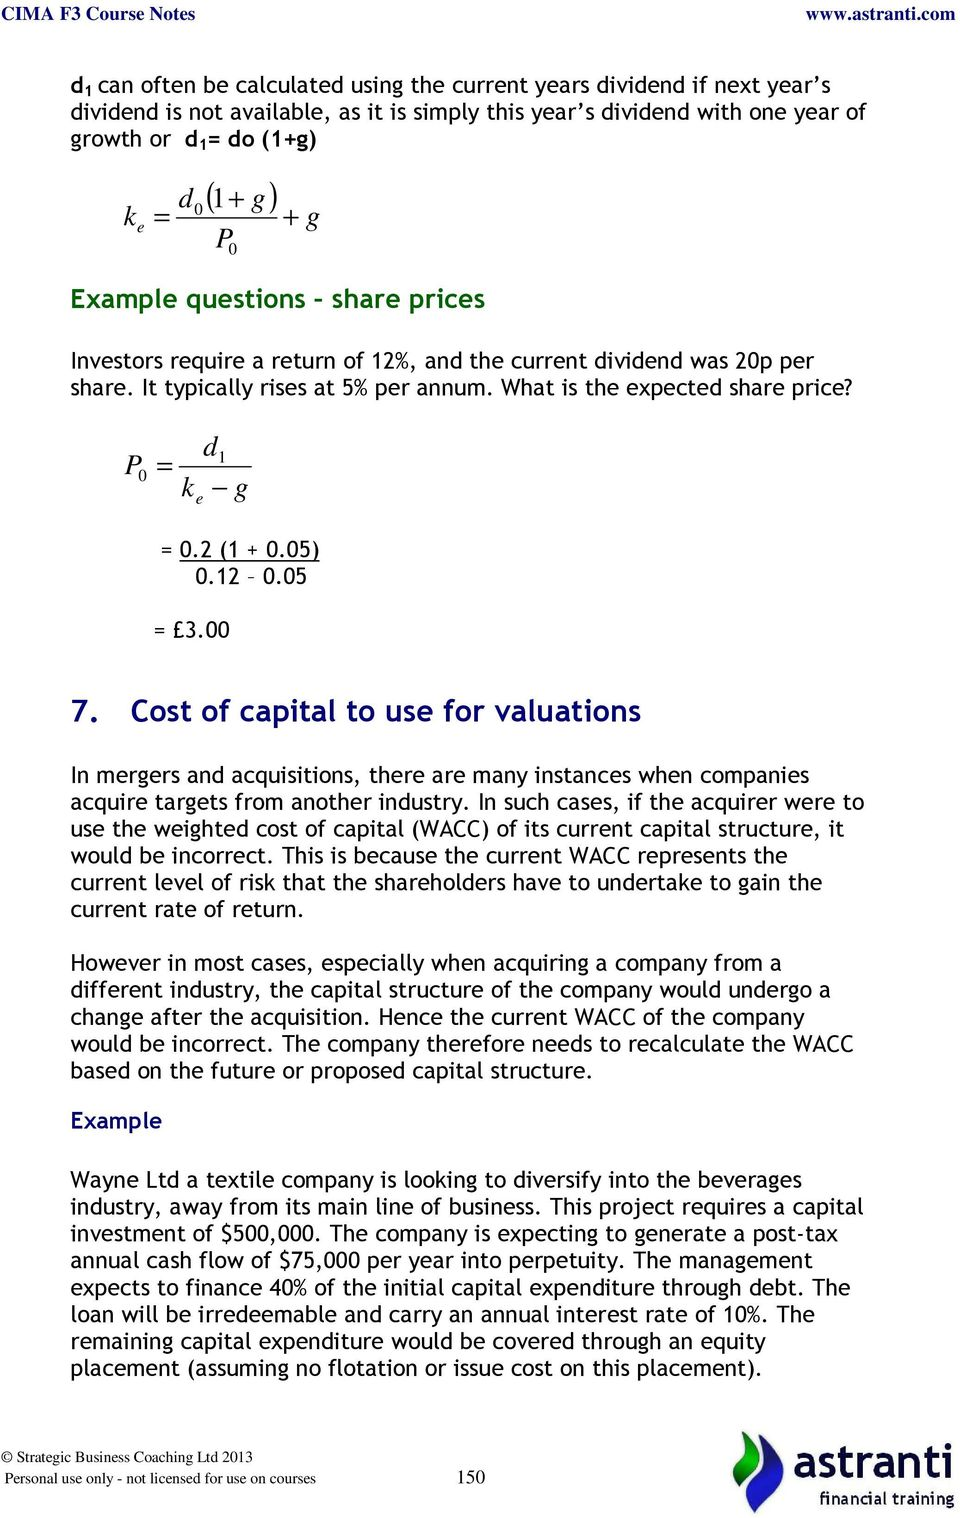 P 0 d 1 = k e g = 0.2 (1 + 0.05) 0.12 0.05 = 3.00 7. Cost of capital to use for valuations In mergers and acquisitions, there are many instances when companies acquire targets from another industry.